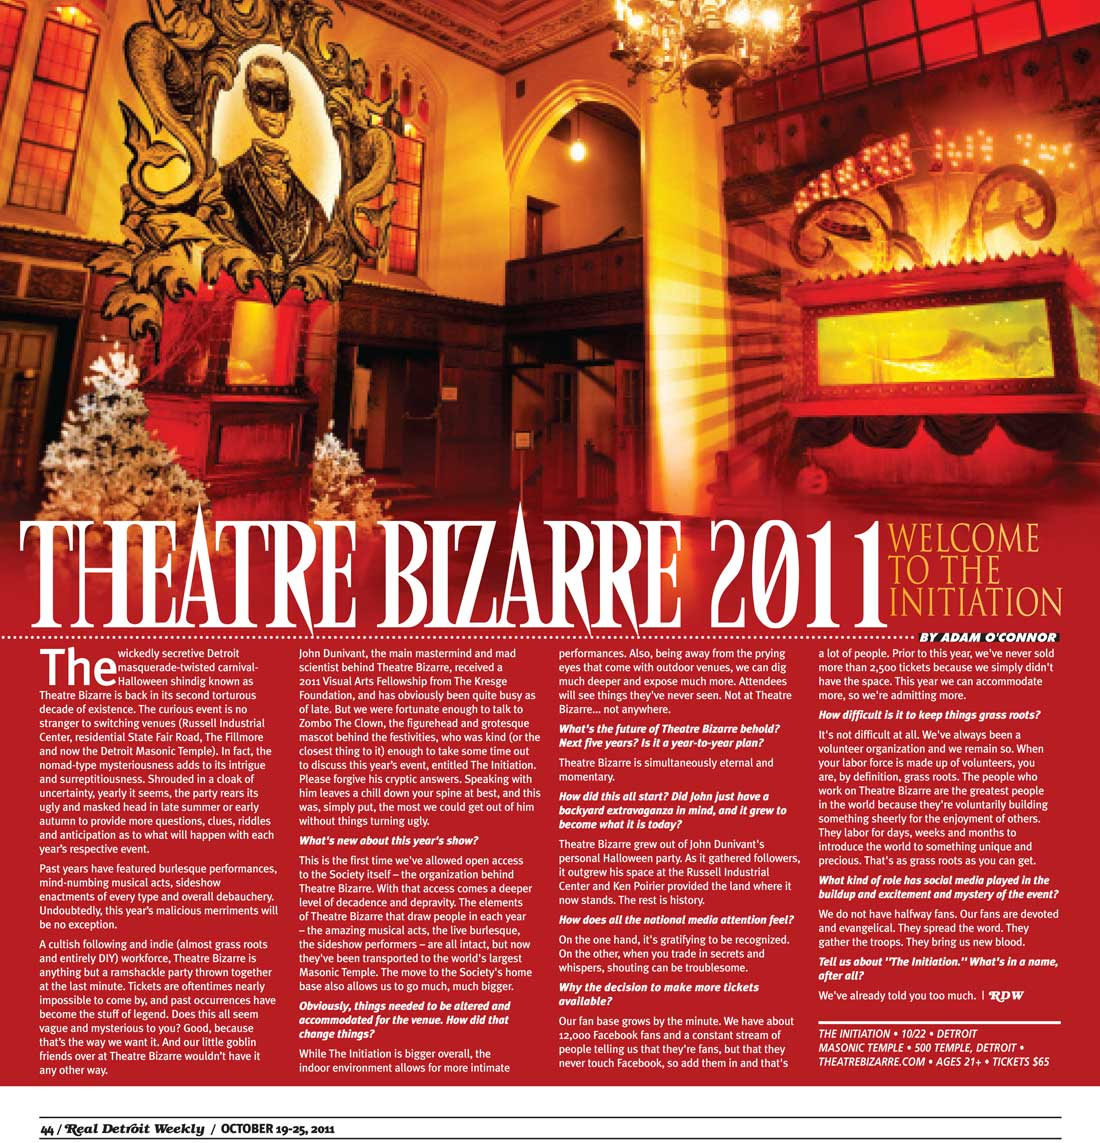 Article about The Initiation (by Theatre Bizarre) in Real Detroit magazine - 10/19/2011